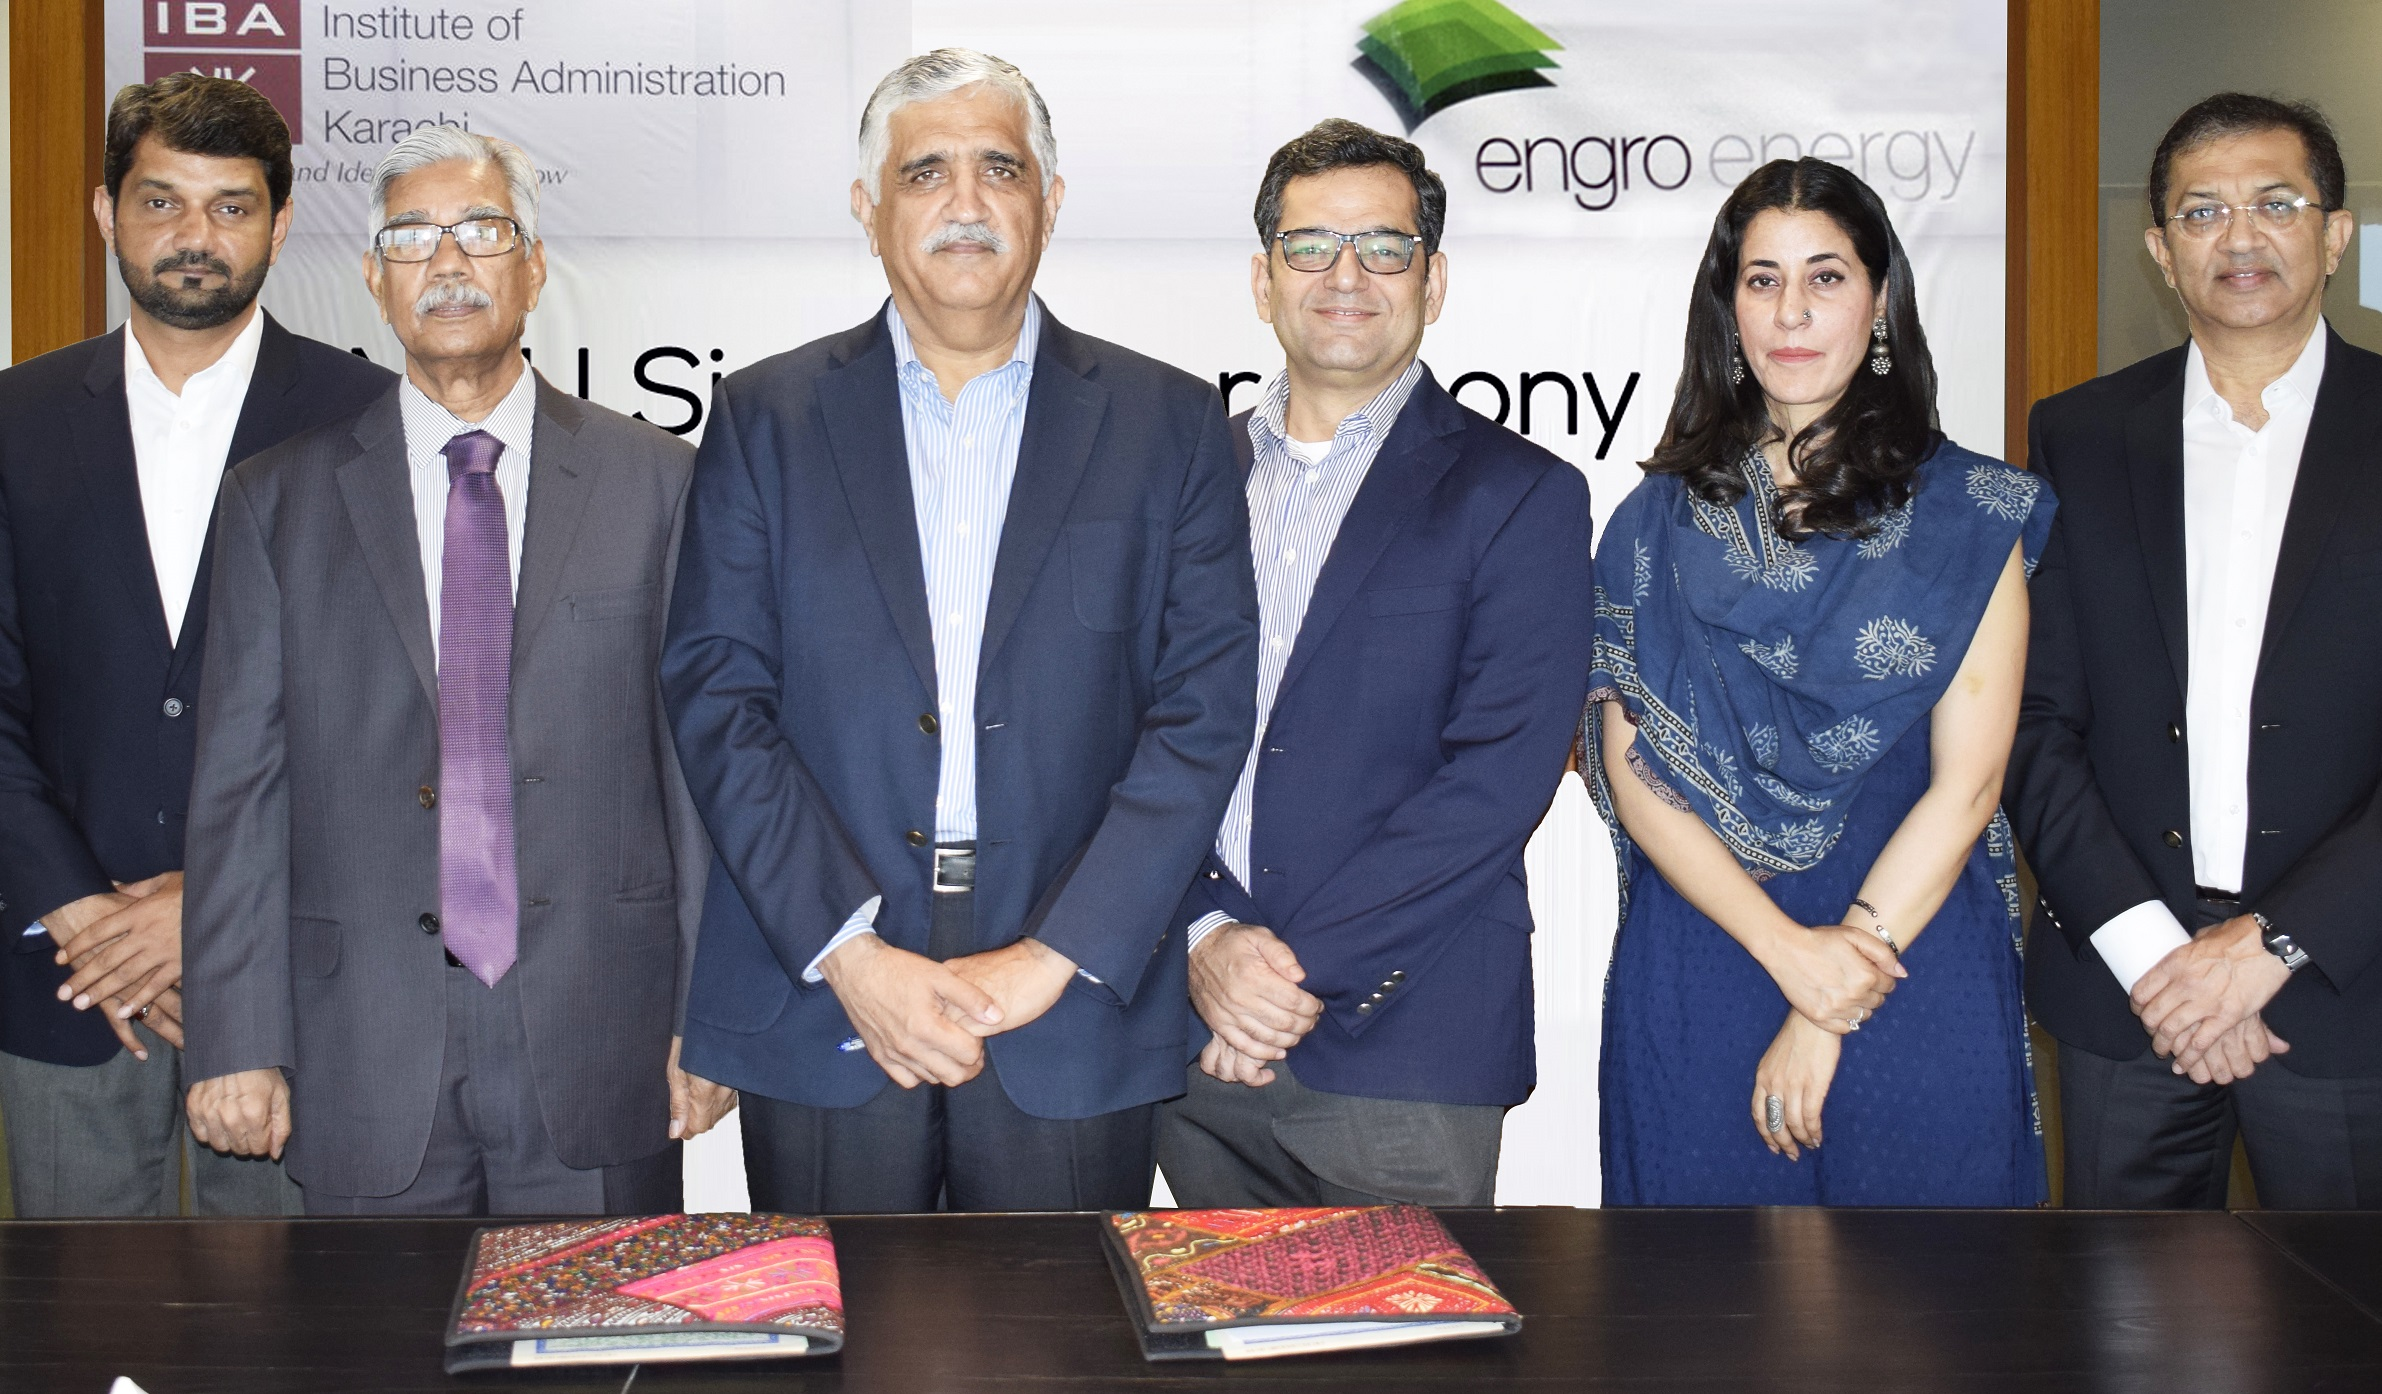 Engro Energy, IBA Karachi ink MoU to educate students from Tharparkar